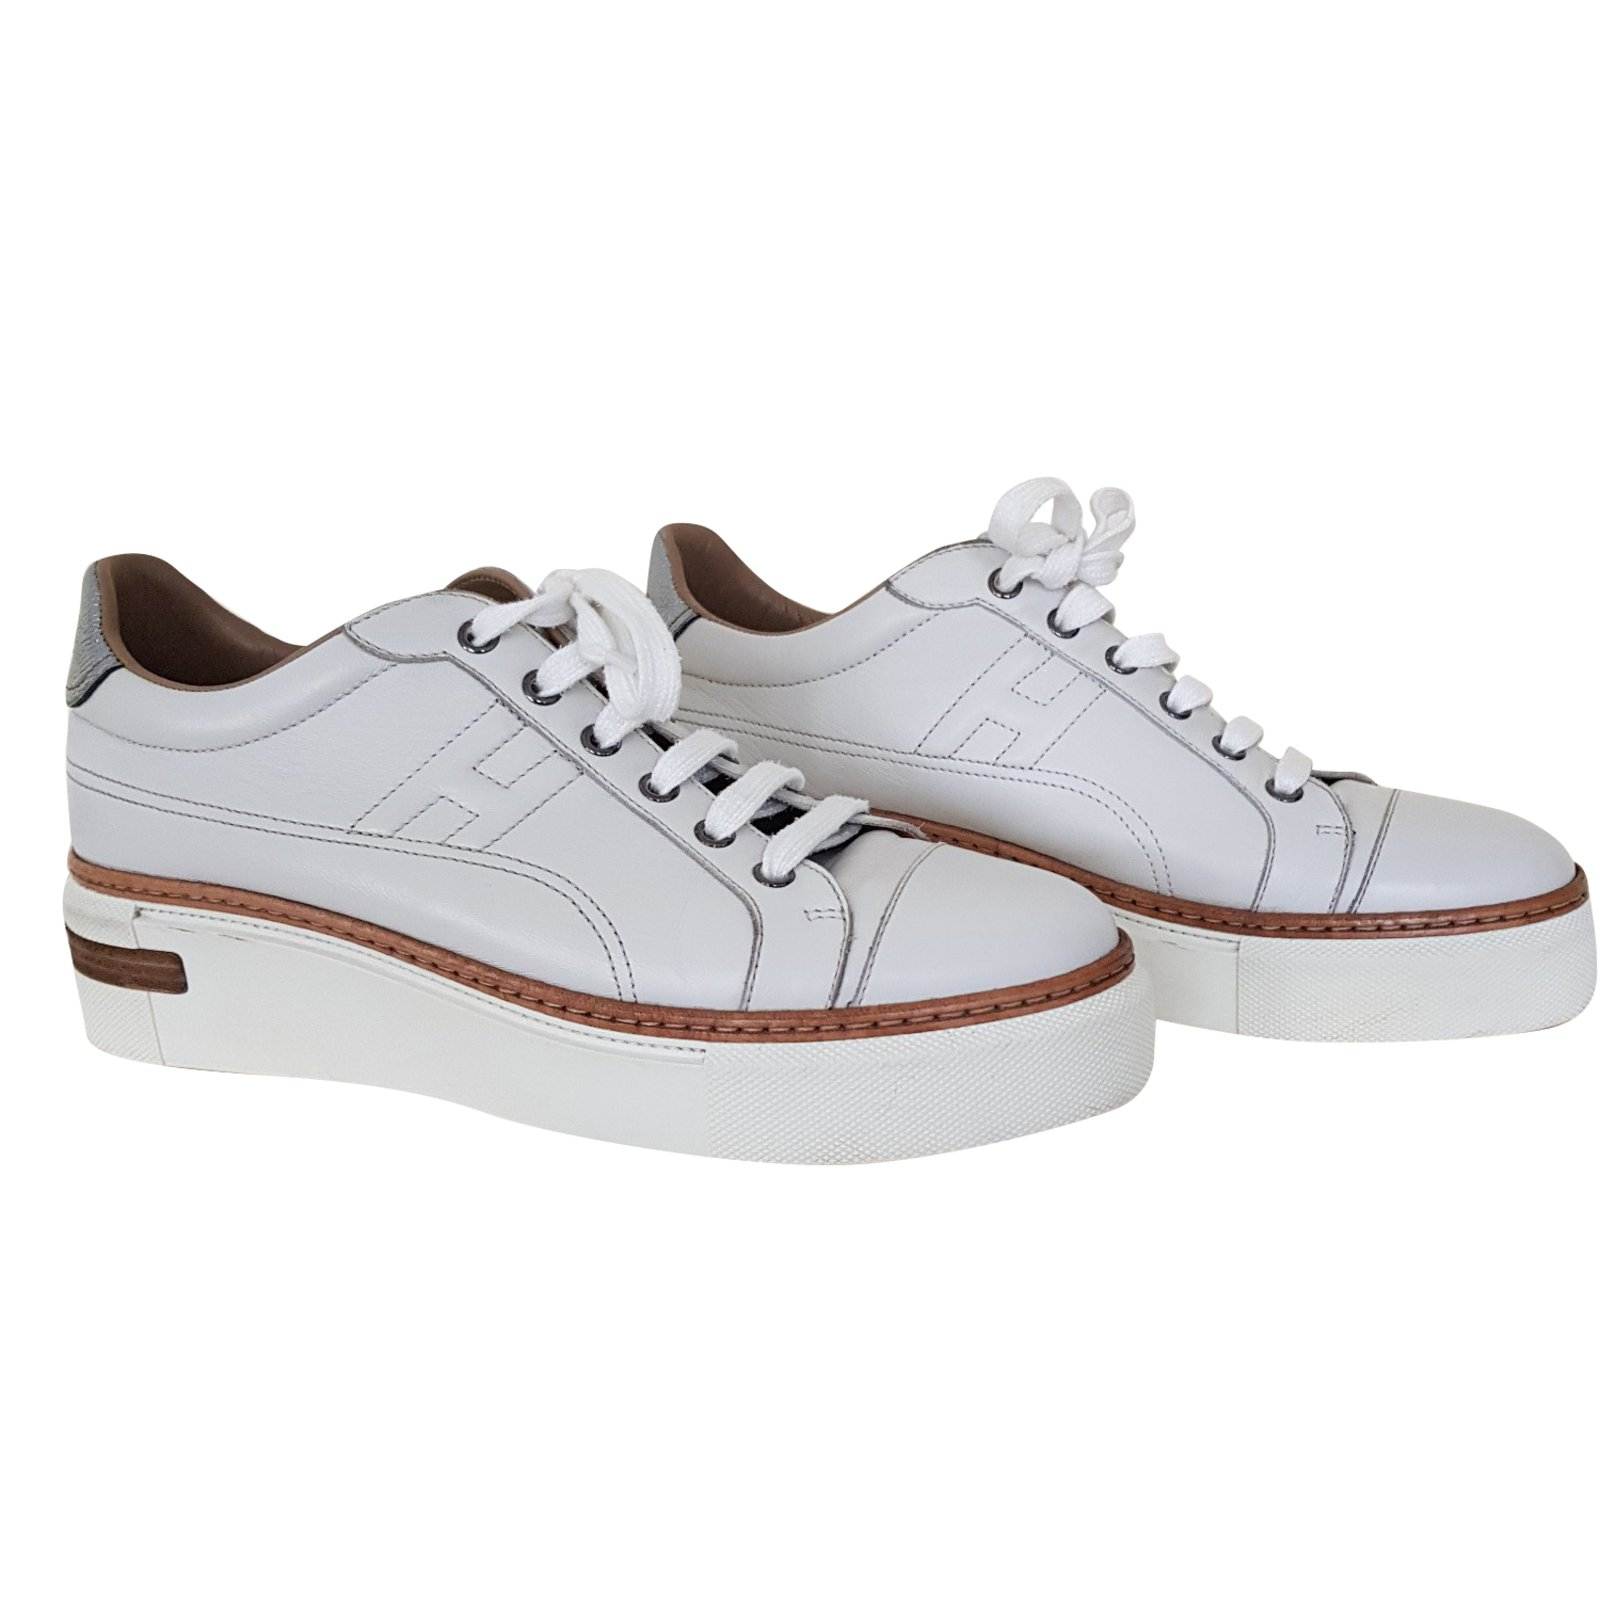 Hermès Polo Sneakers Sneakers Leather